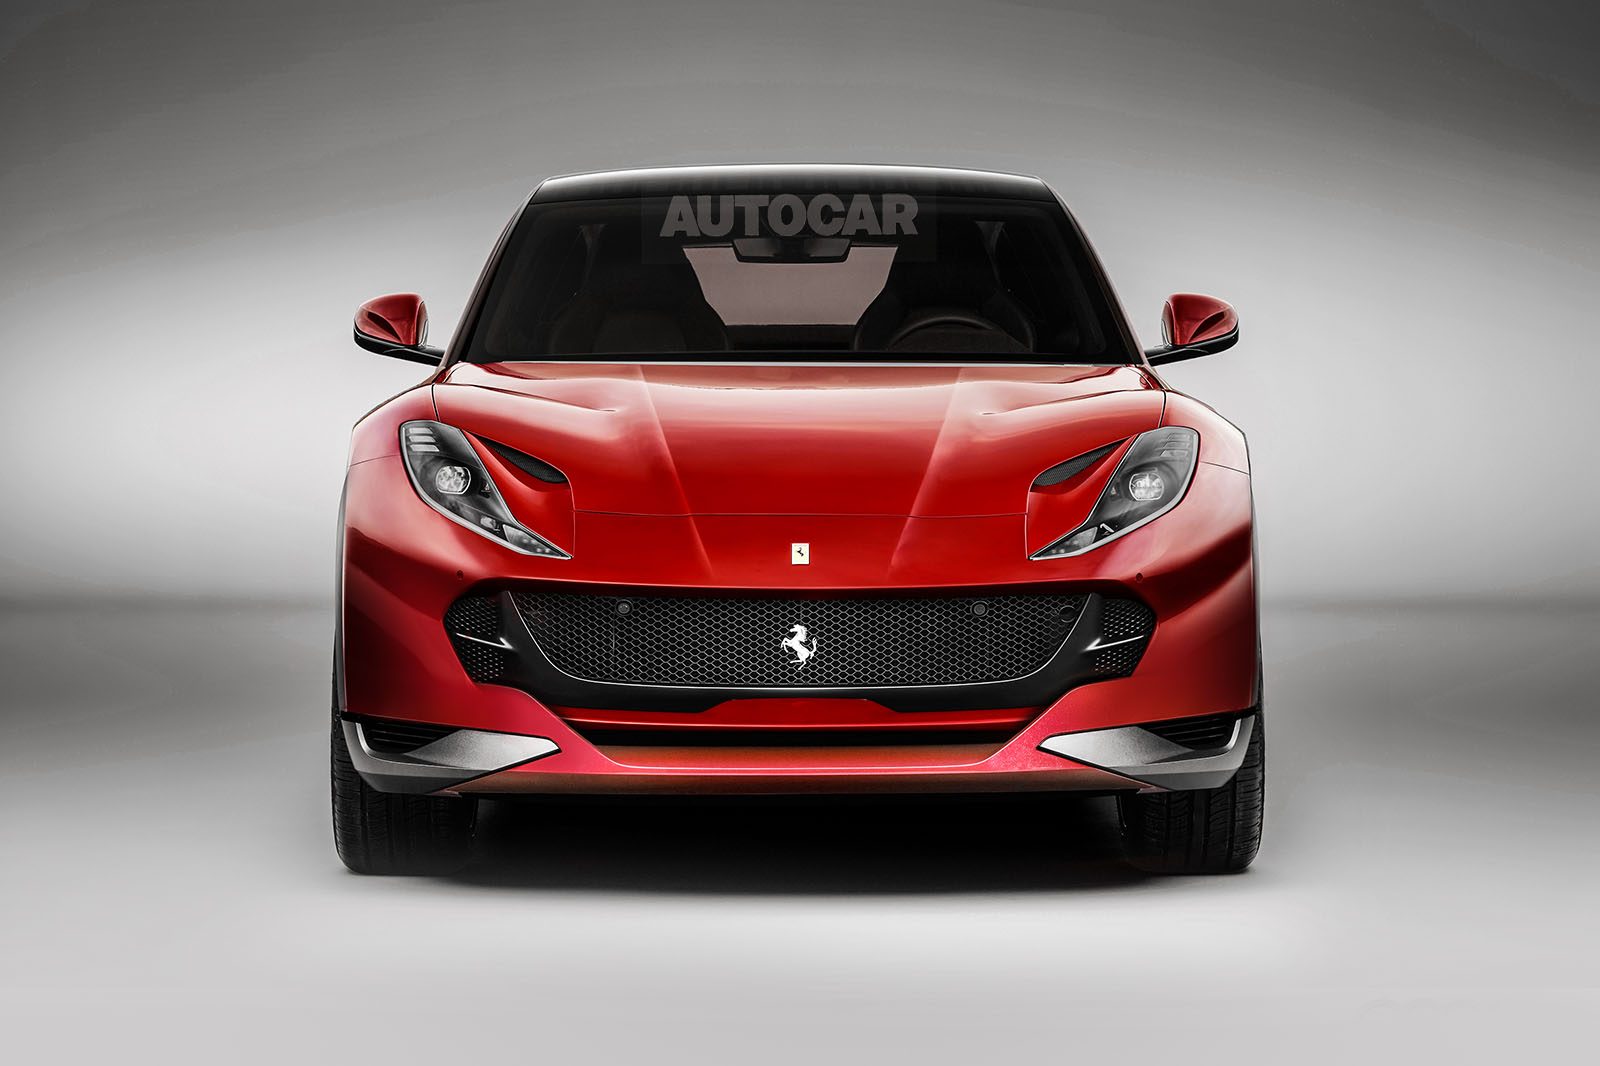 global preview every premium sports car 2019 onwards autocar autocar